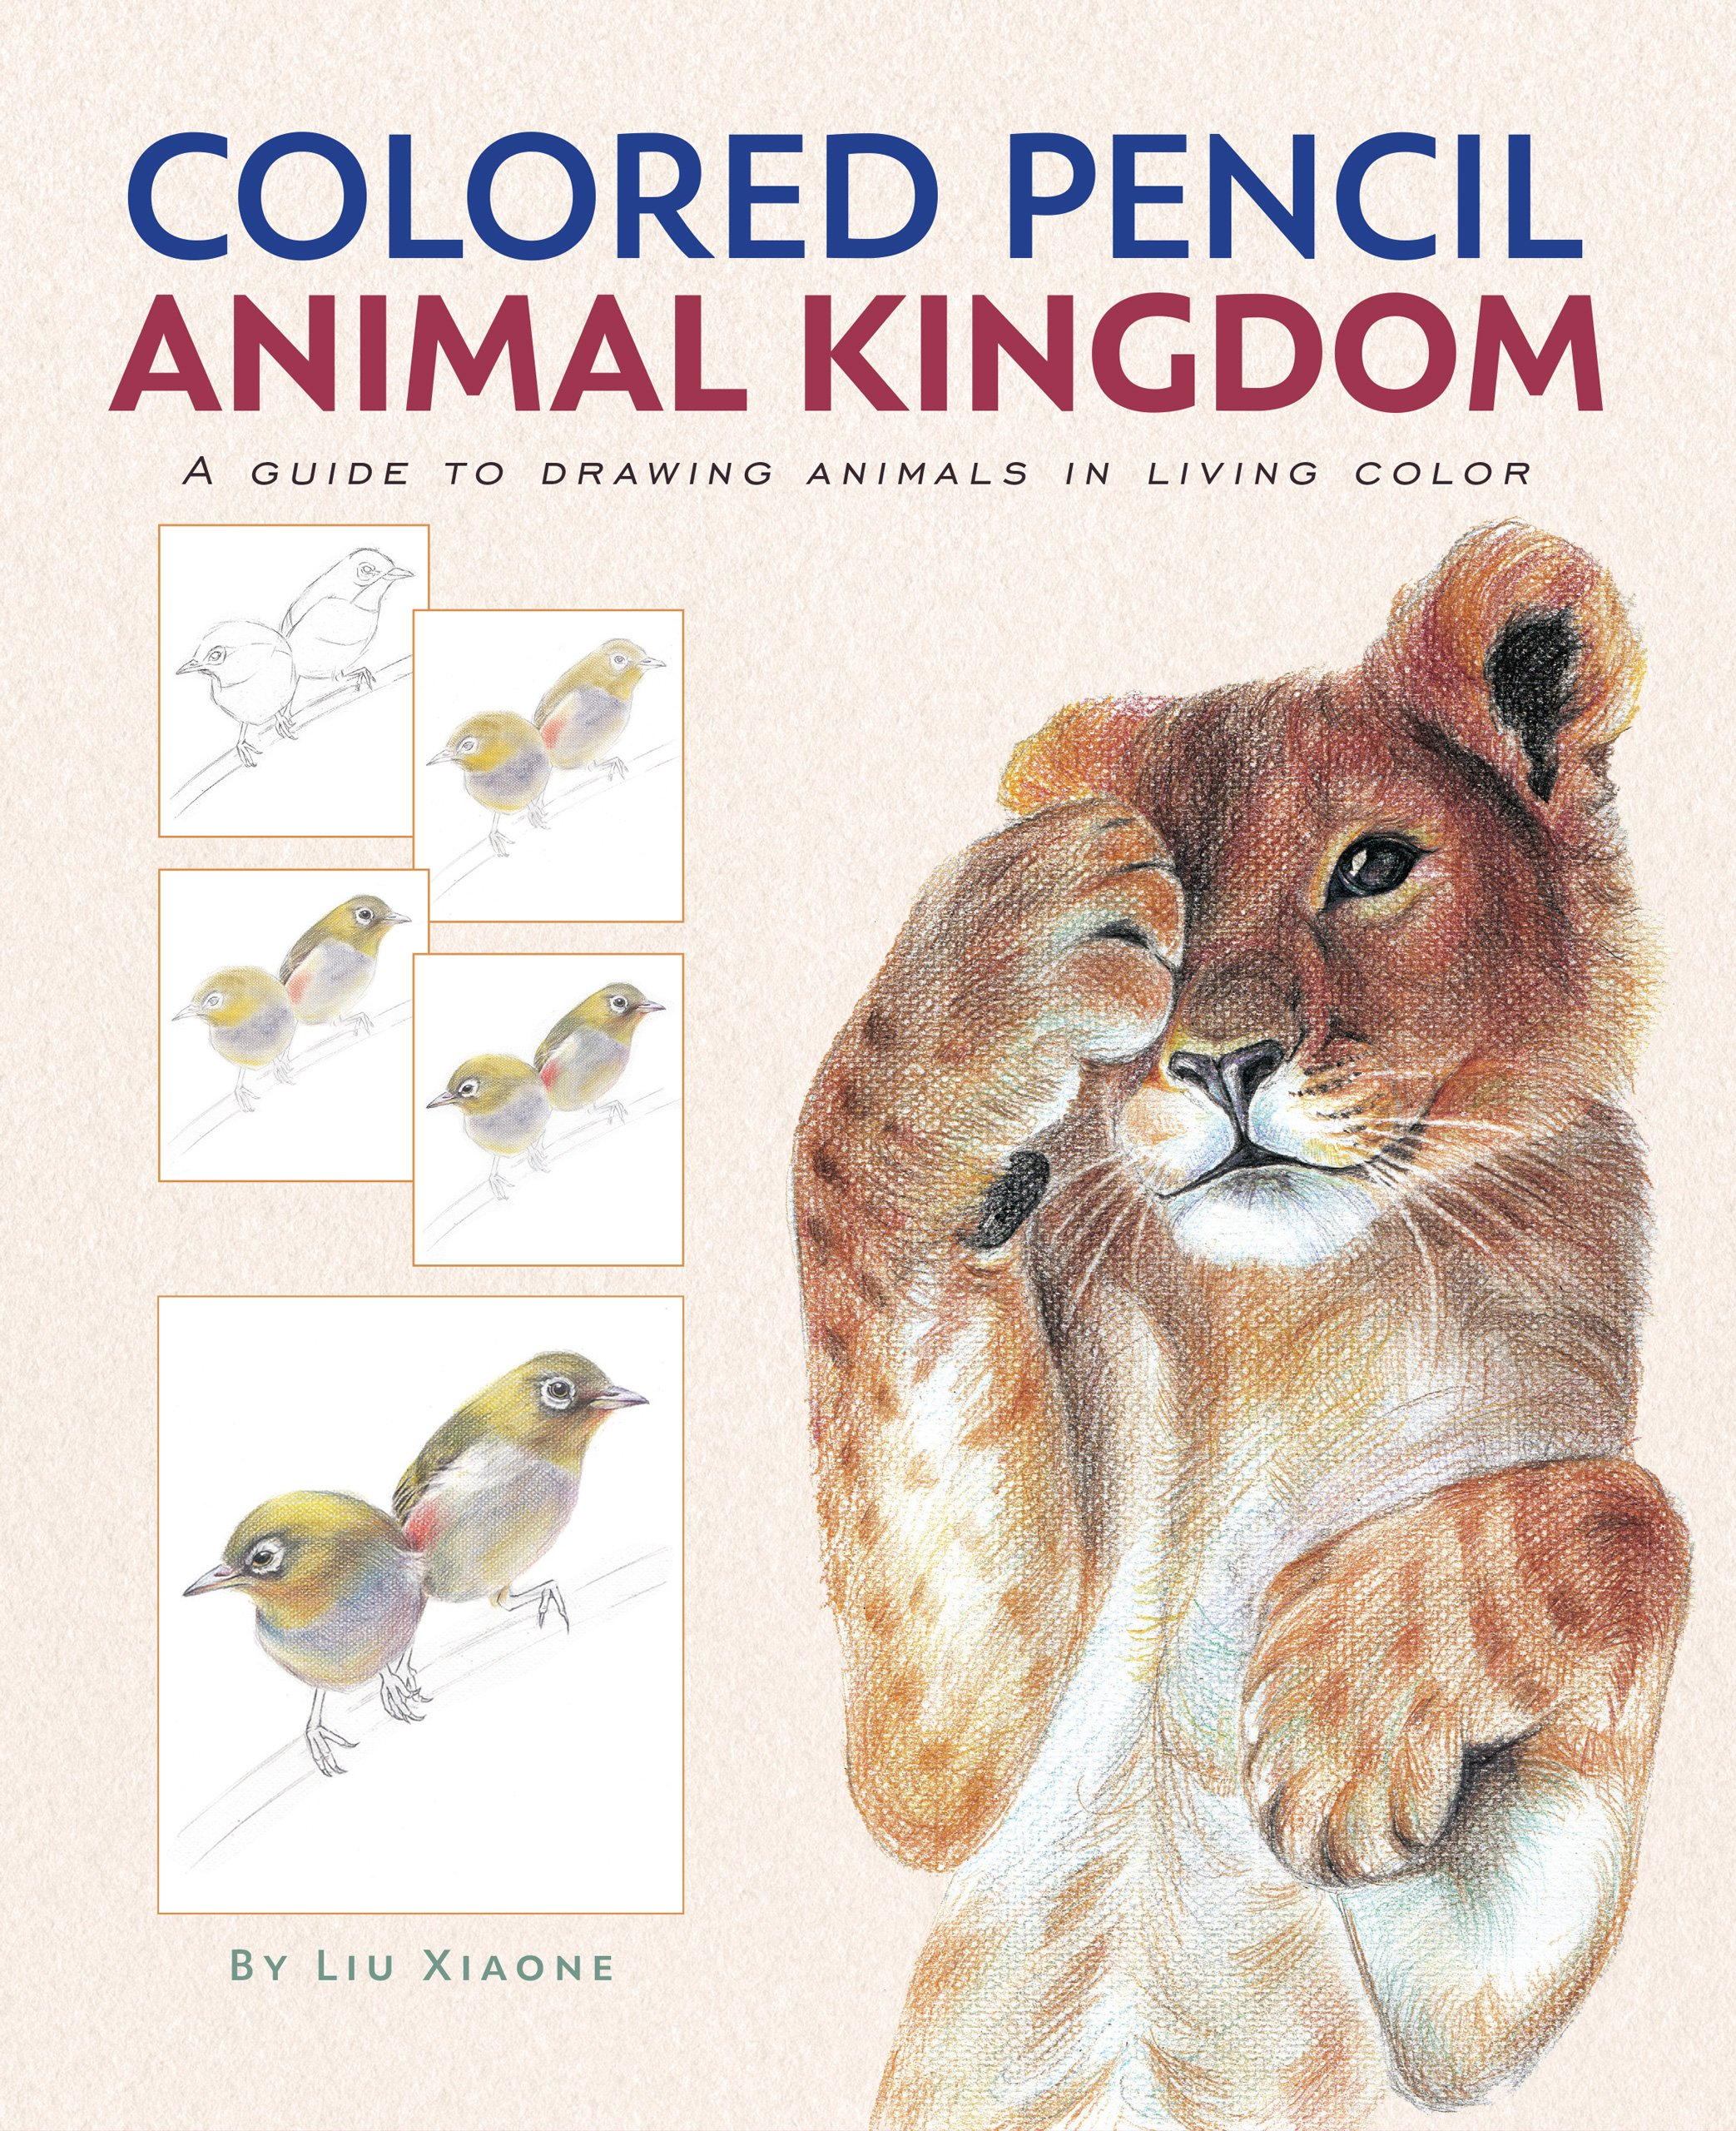 Colored Pencil Animal Kingdom A Guide To Drawing Animals In Living Color Liu Xiaone 9781441324115 Amazon Com Books